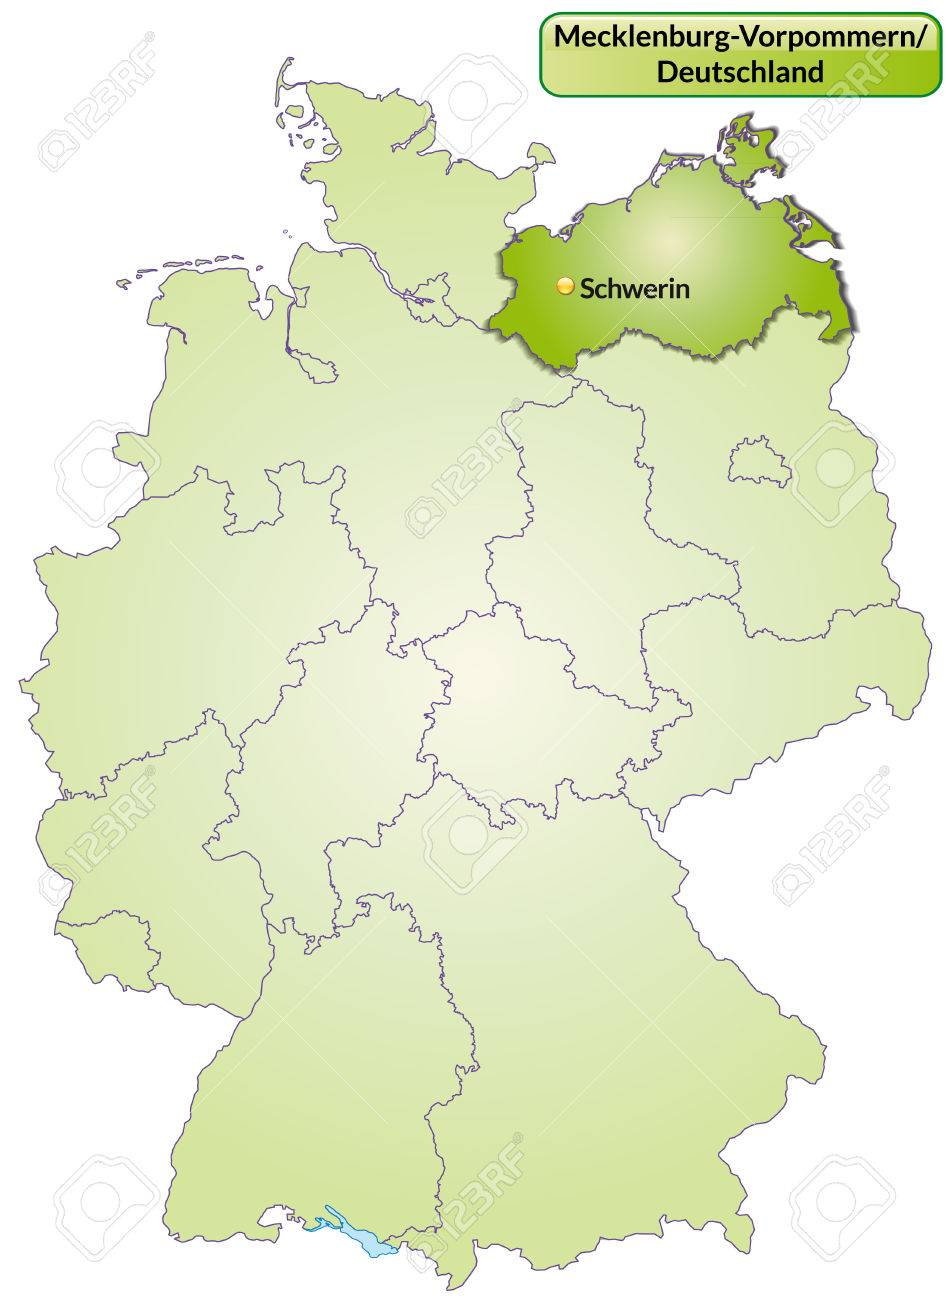 Map of Mecklenburg-Western Pomerania with main cities in green